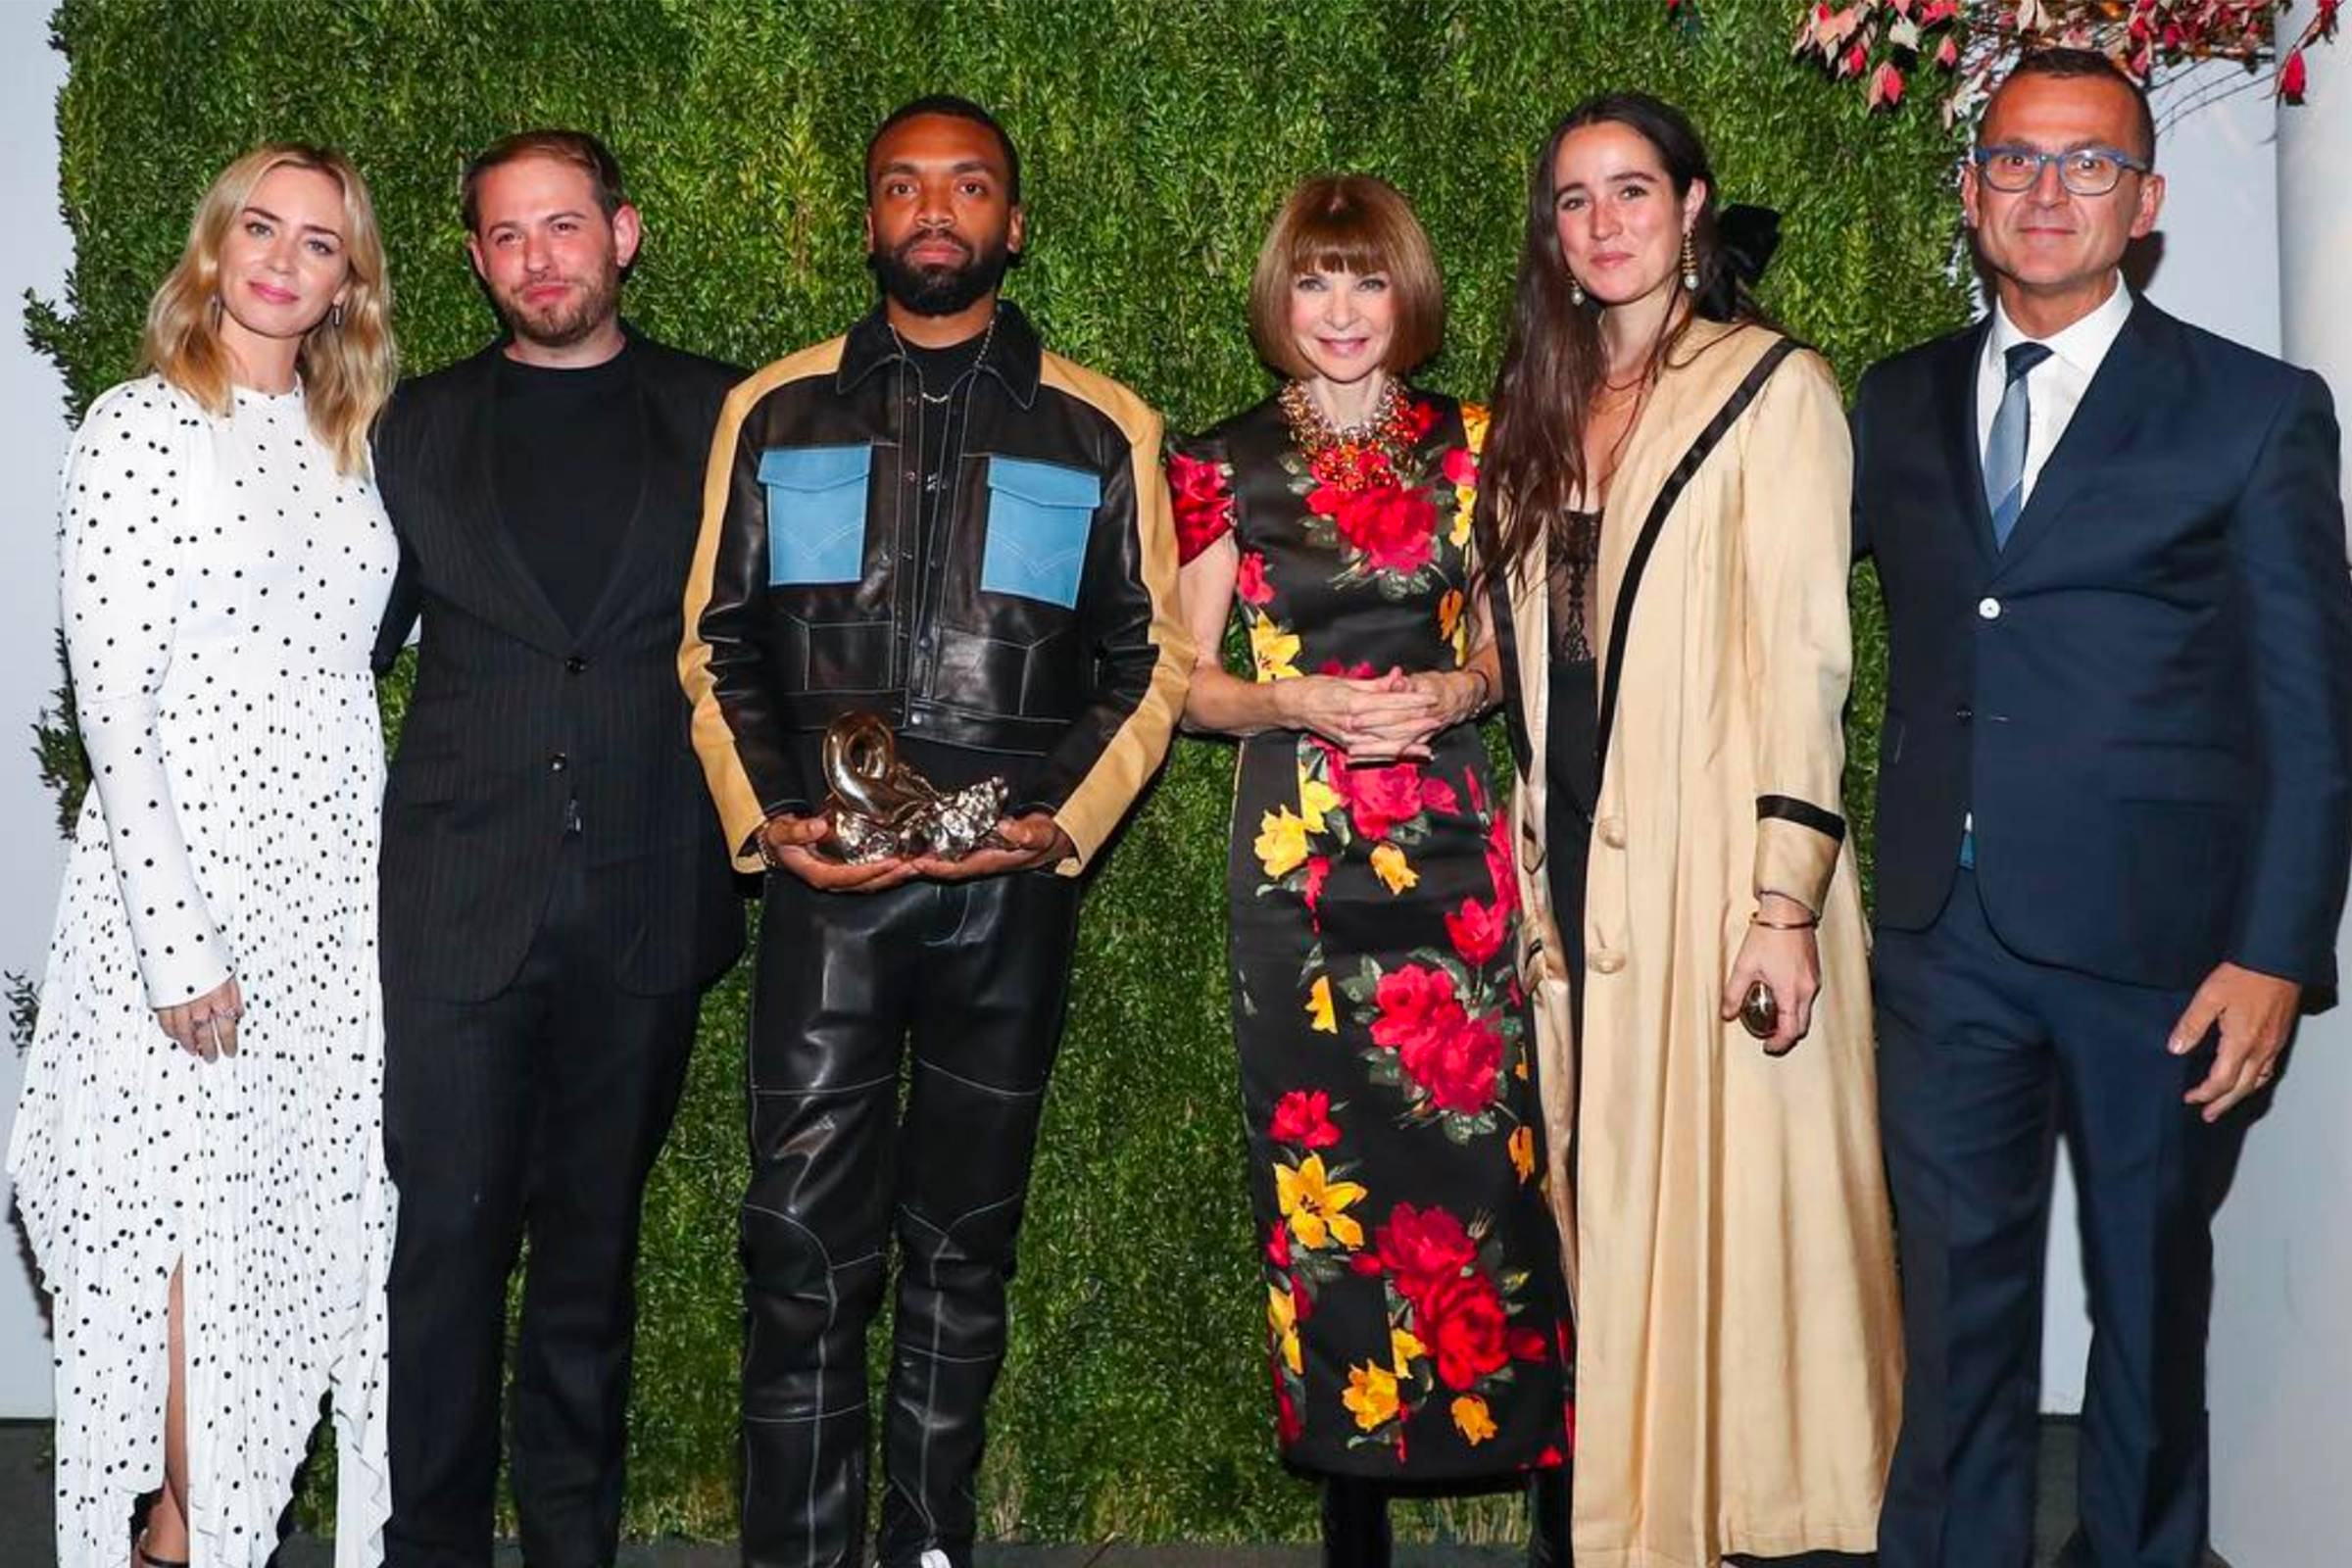 Pyer Moss Takes Home Top Honors at 2018 CFDA/Vogue Fashion Fund